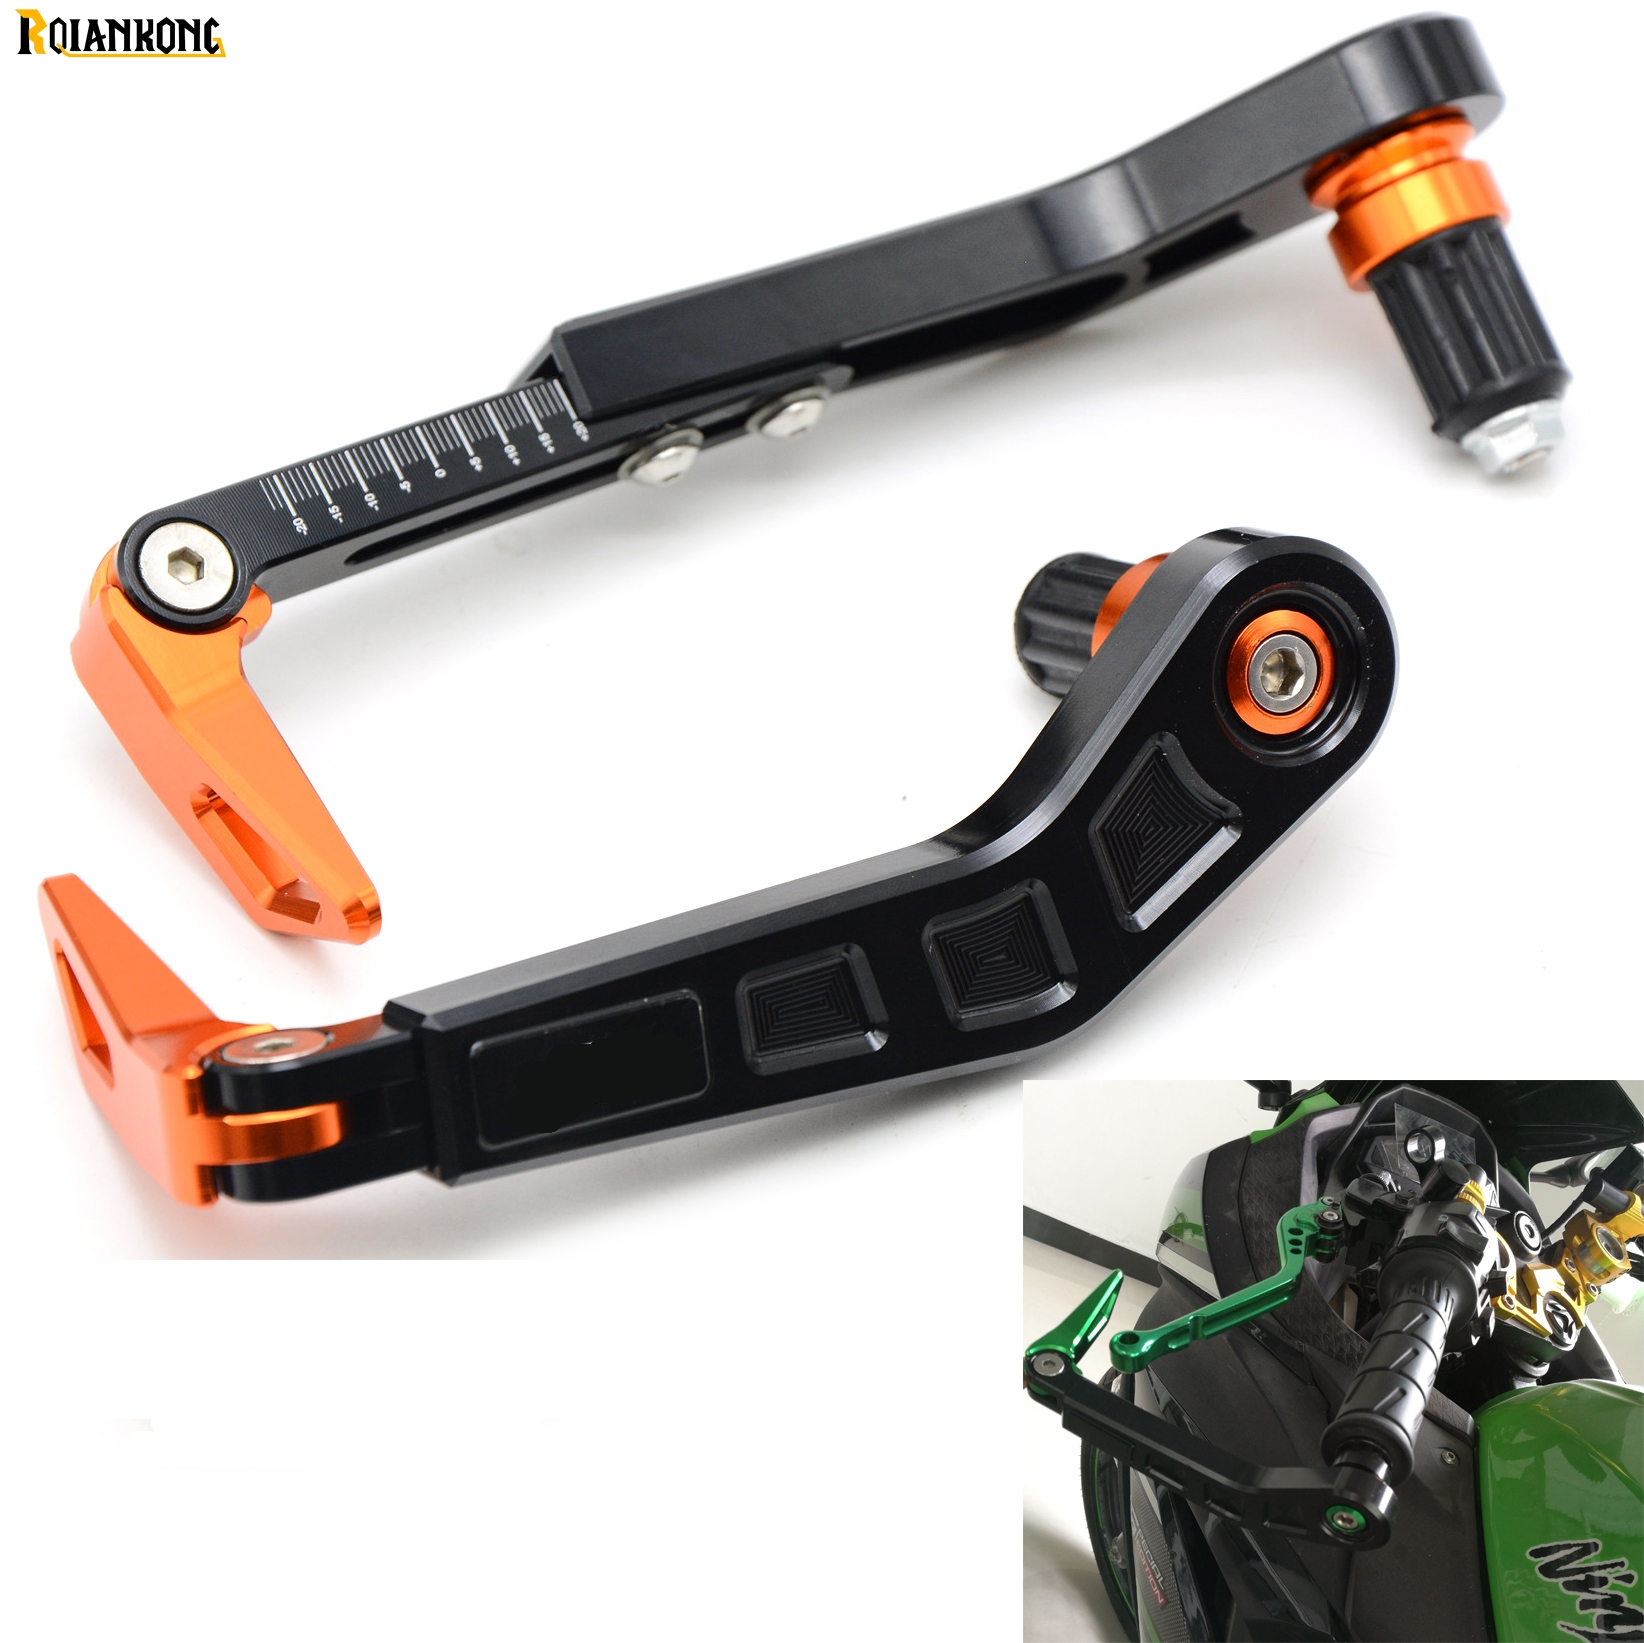 Universal 7/822mm Motorcycle Handlebar Brake Clutch Lever Guard for KTM 1050 1090 1190 1290 Adventure R RC8 Super Duke T ABS for ktm 390 duke motorcycle leather pillon passenger rear seat black color